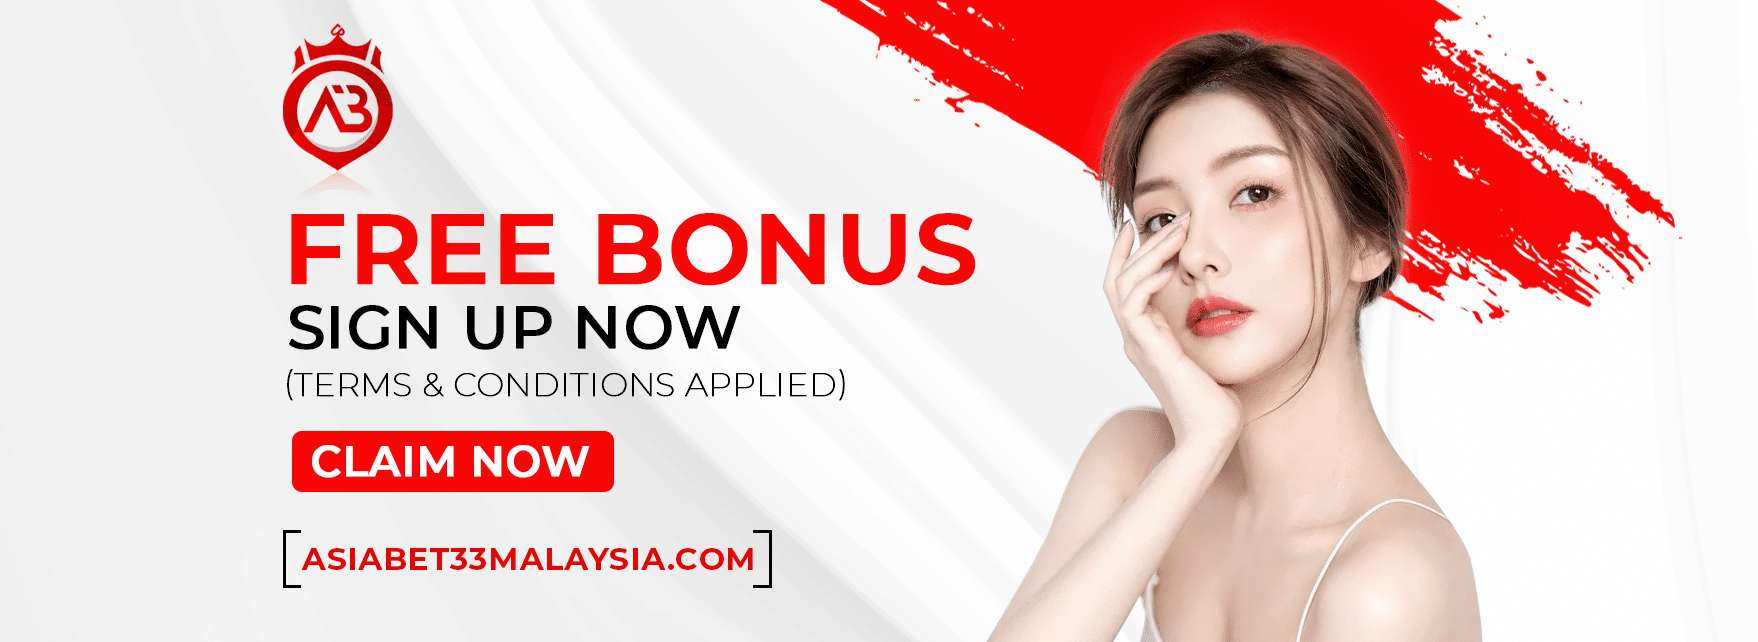 asiabet33 free credit sign up